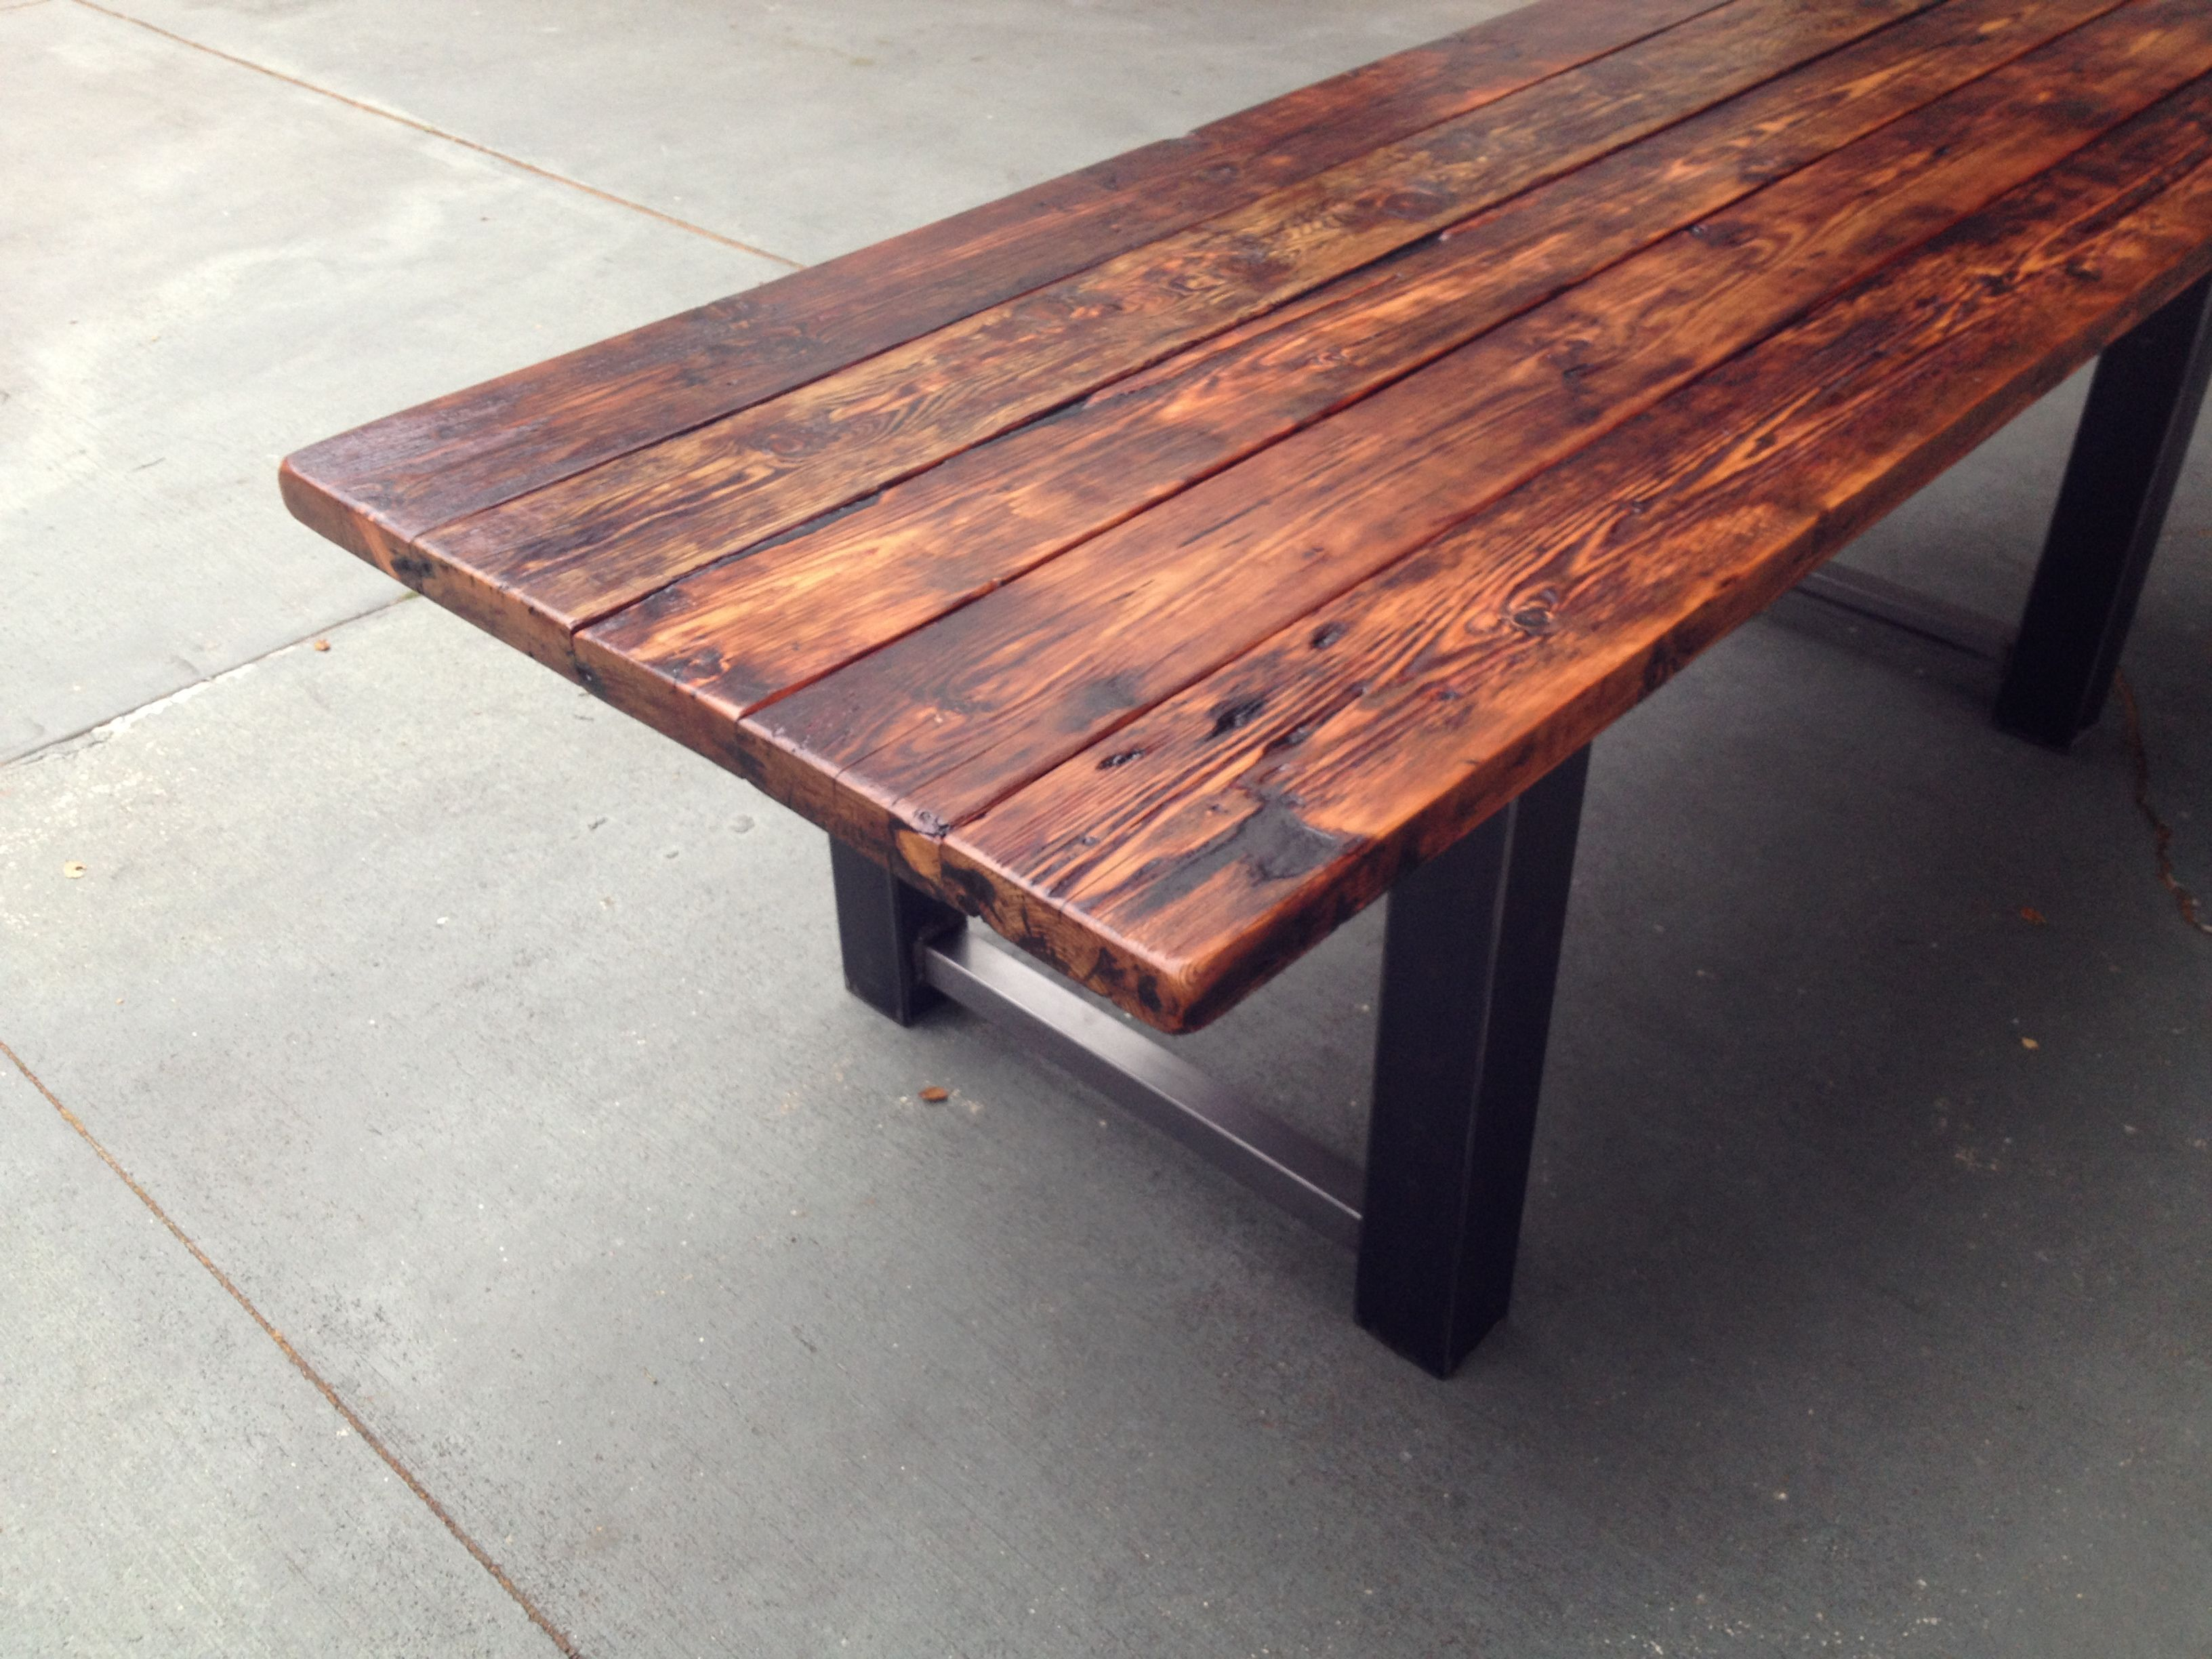 Reclaimed Wood and Metal Dining Table 8 | Steel / wood | Pinterest ...